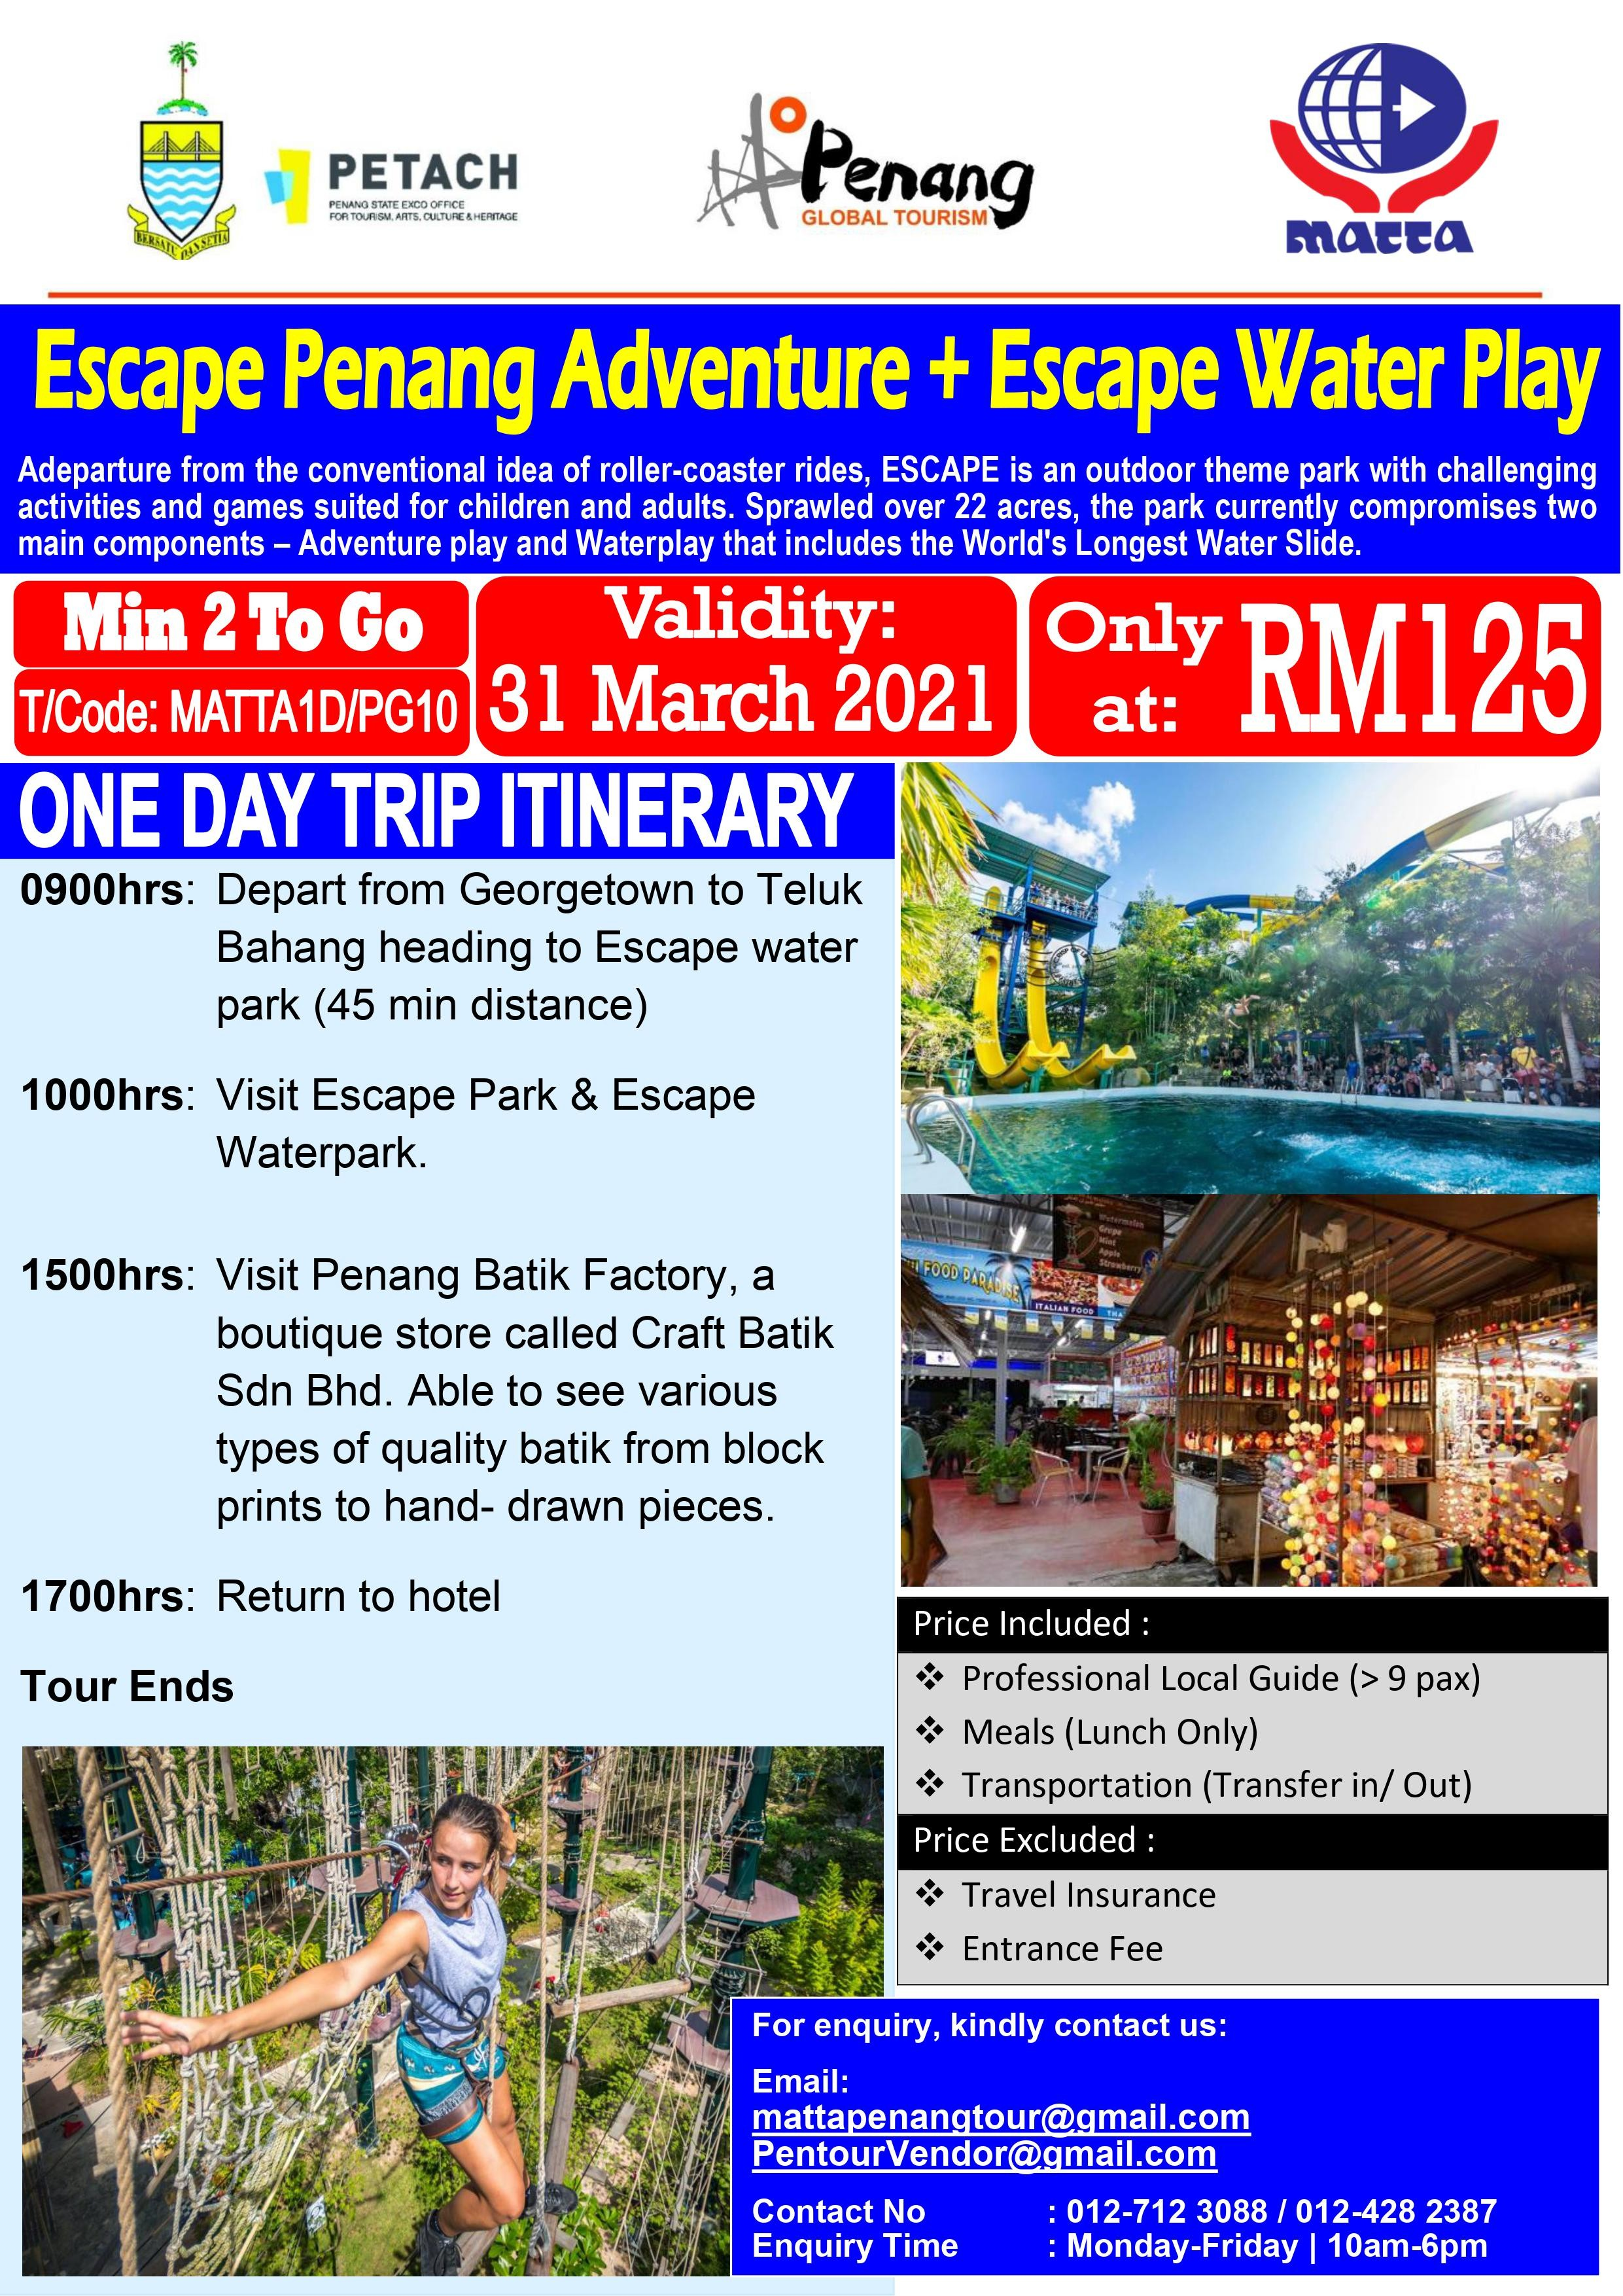 Escape Penang Adventure - 1 Day